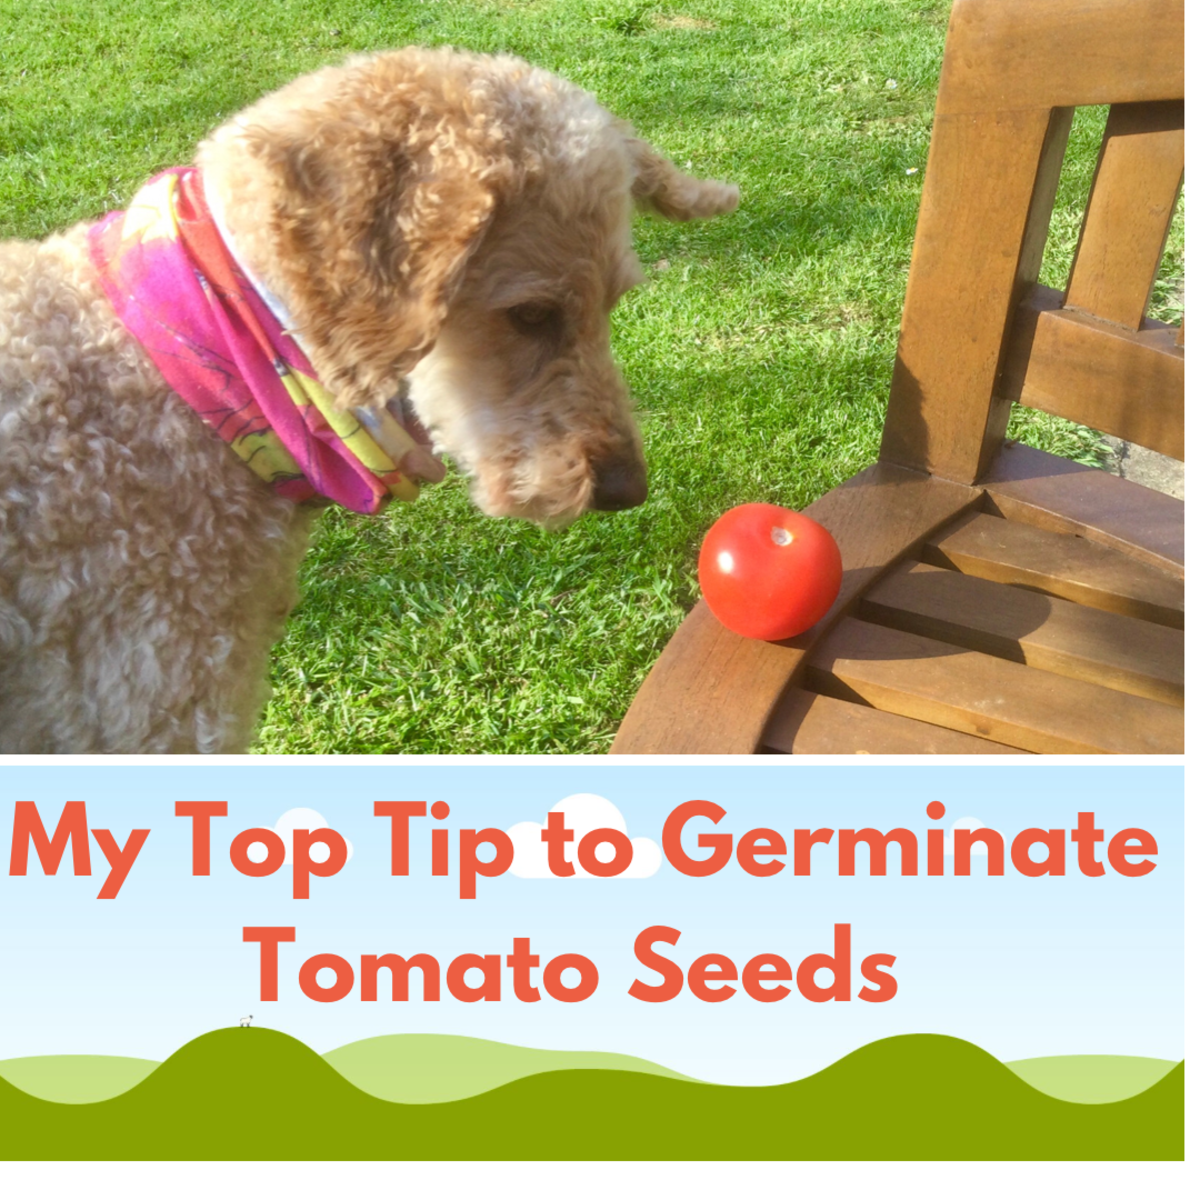 My Top Tip to Improve Tomato Seed Germination